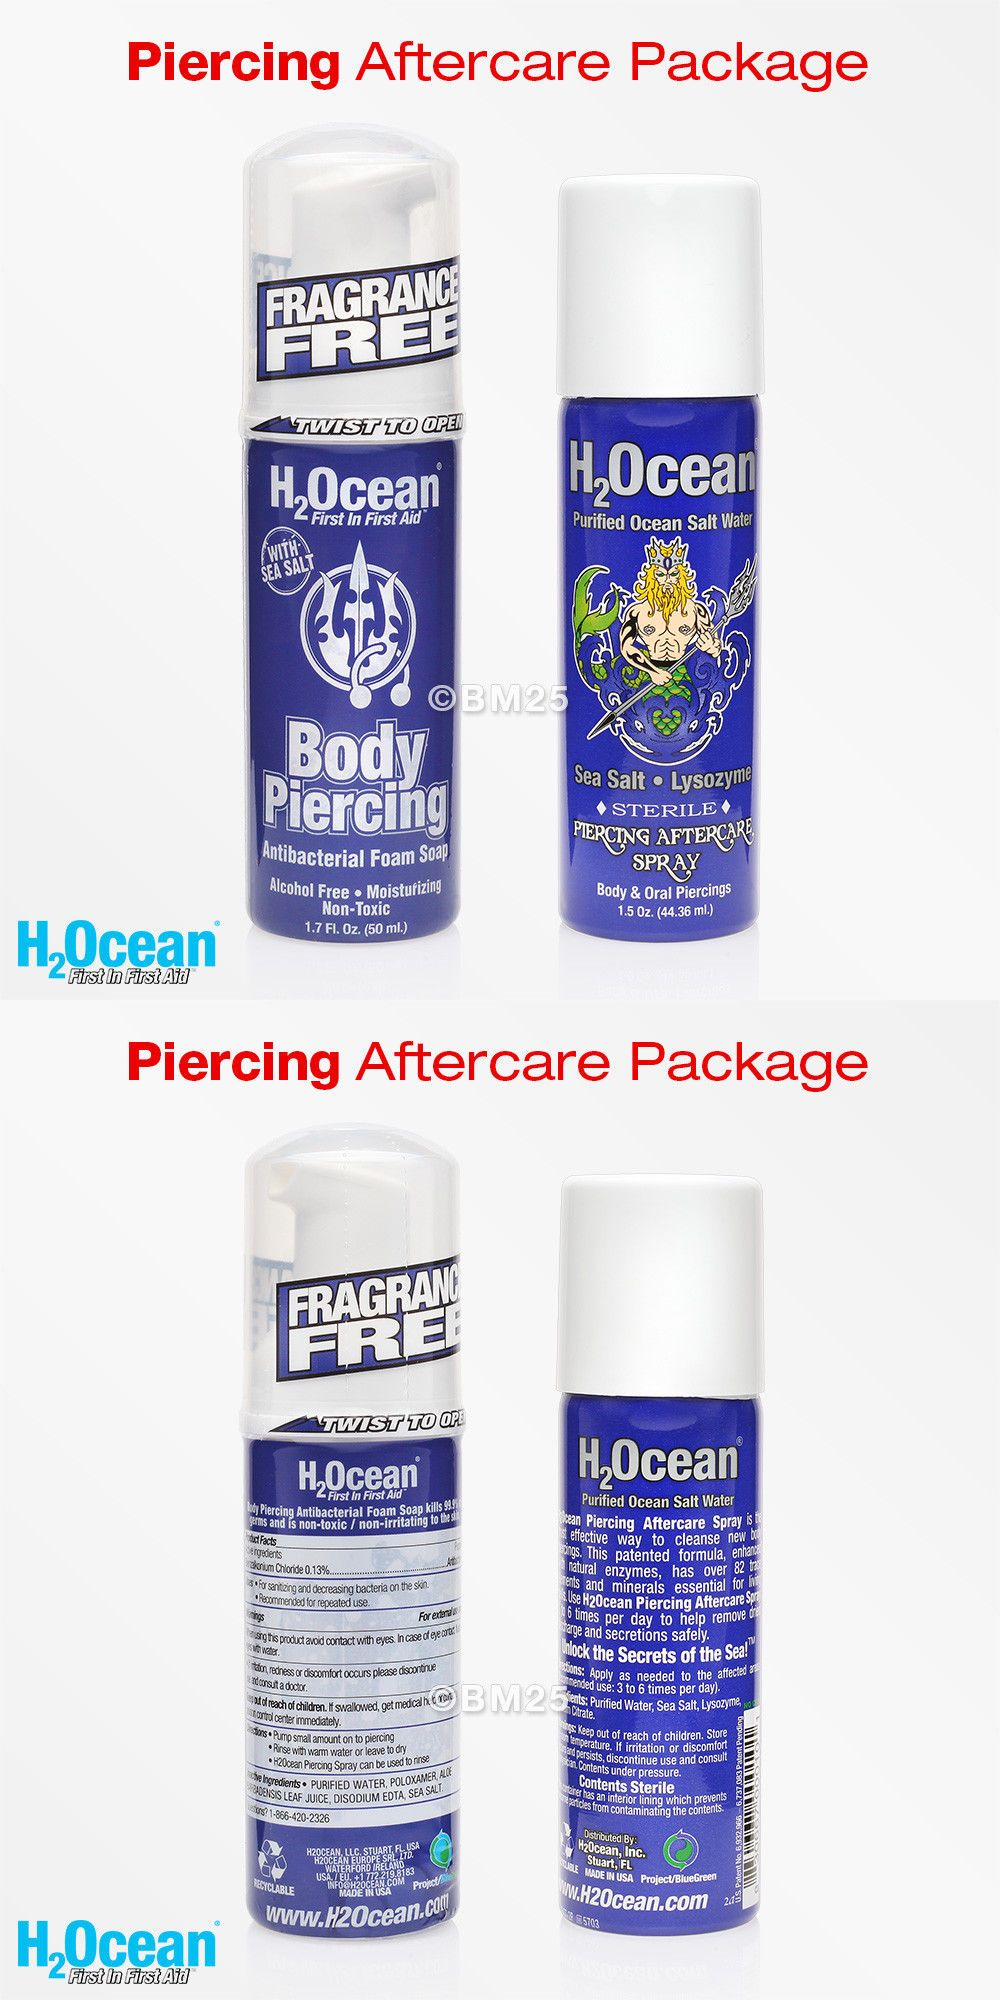 Piercing Supplies And Kits 33916 H2ocean Body Piercing Soap And